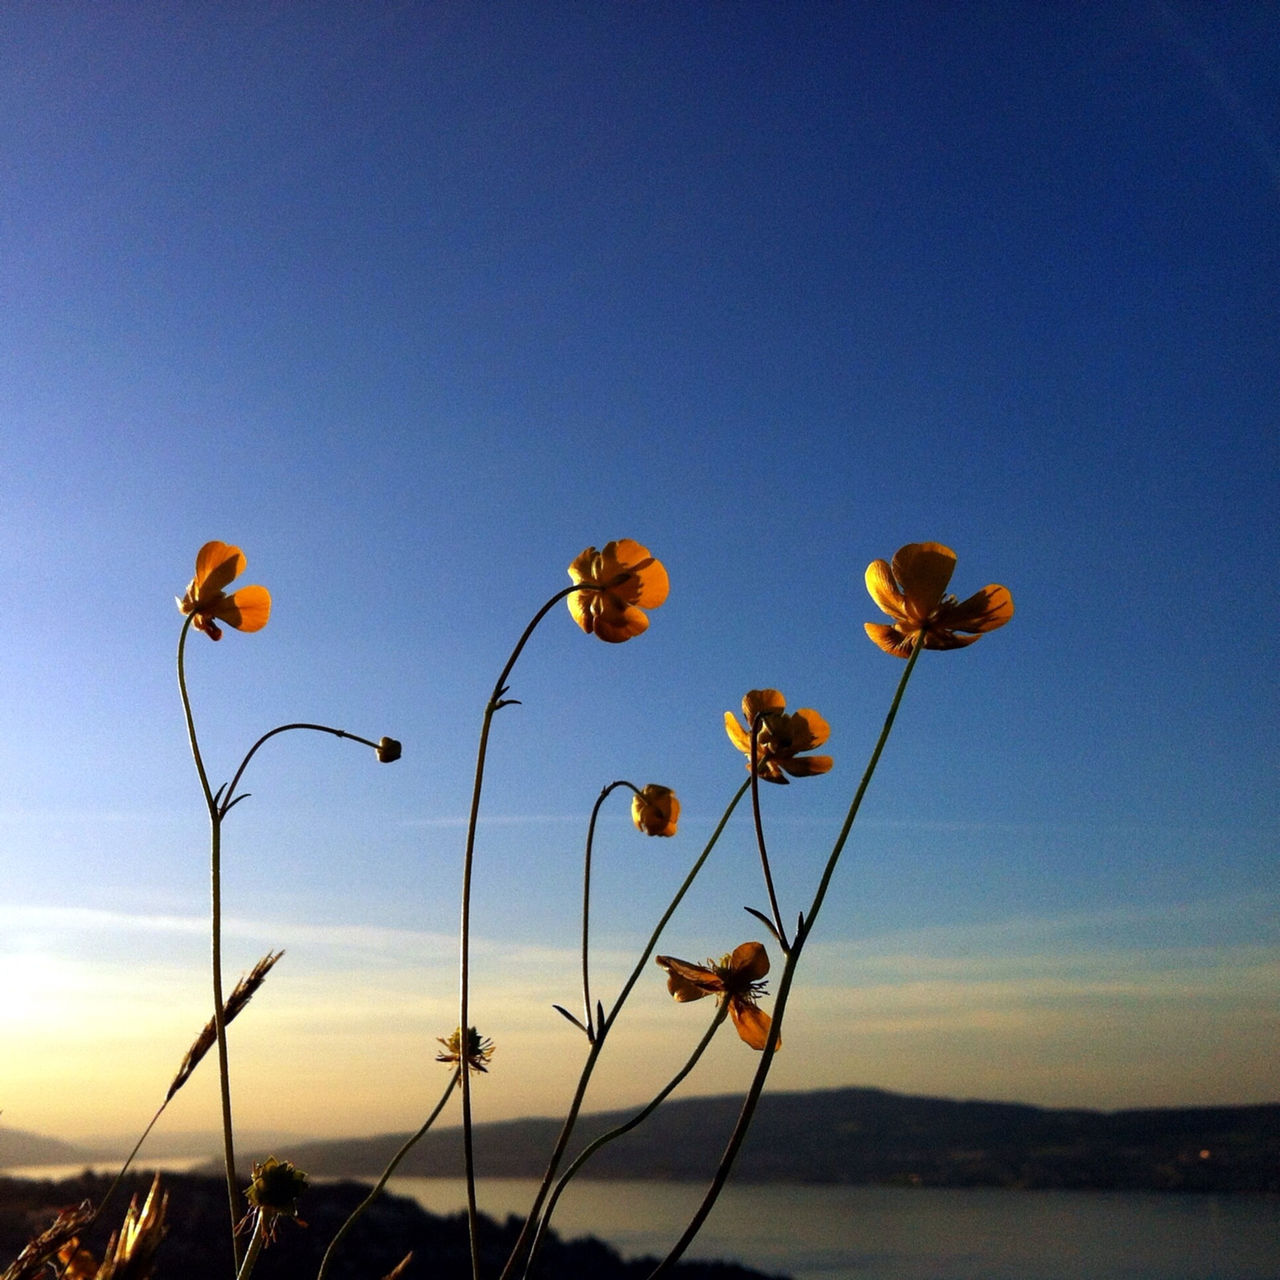 Close-up of flowers growing against sky at sunset